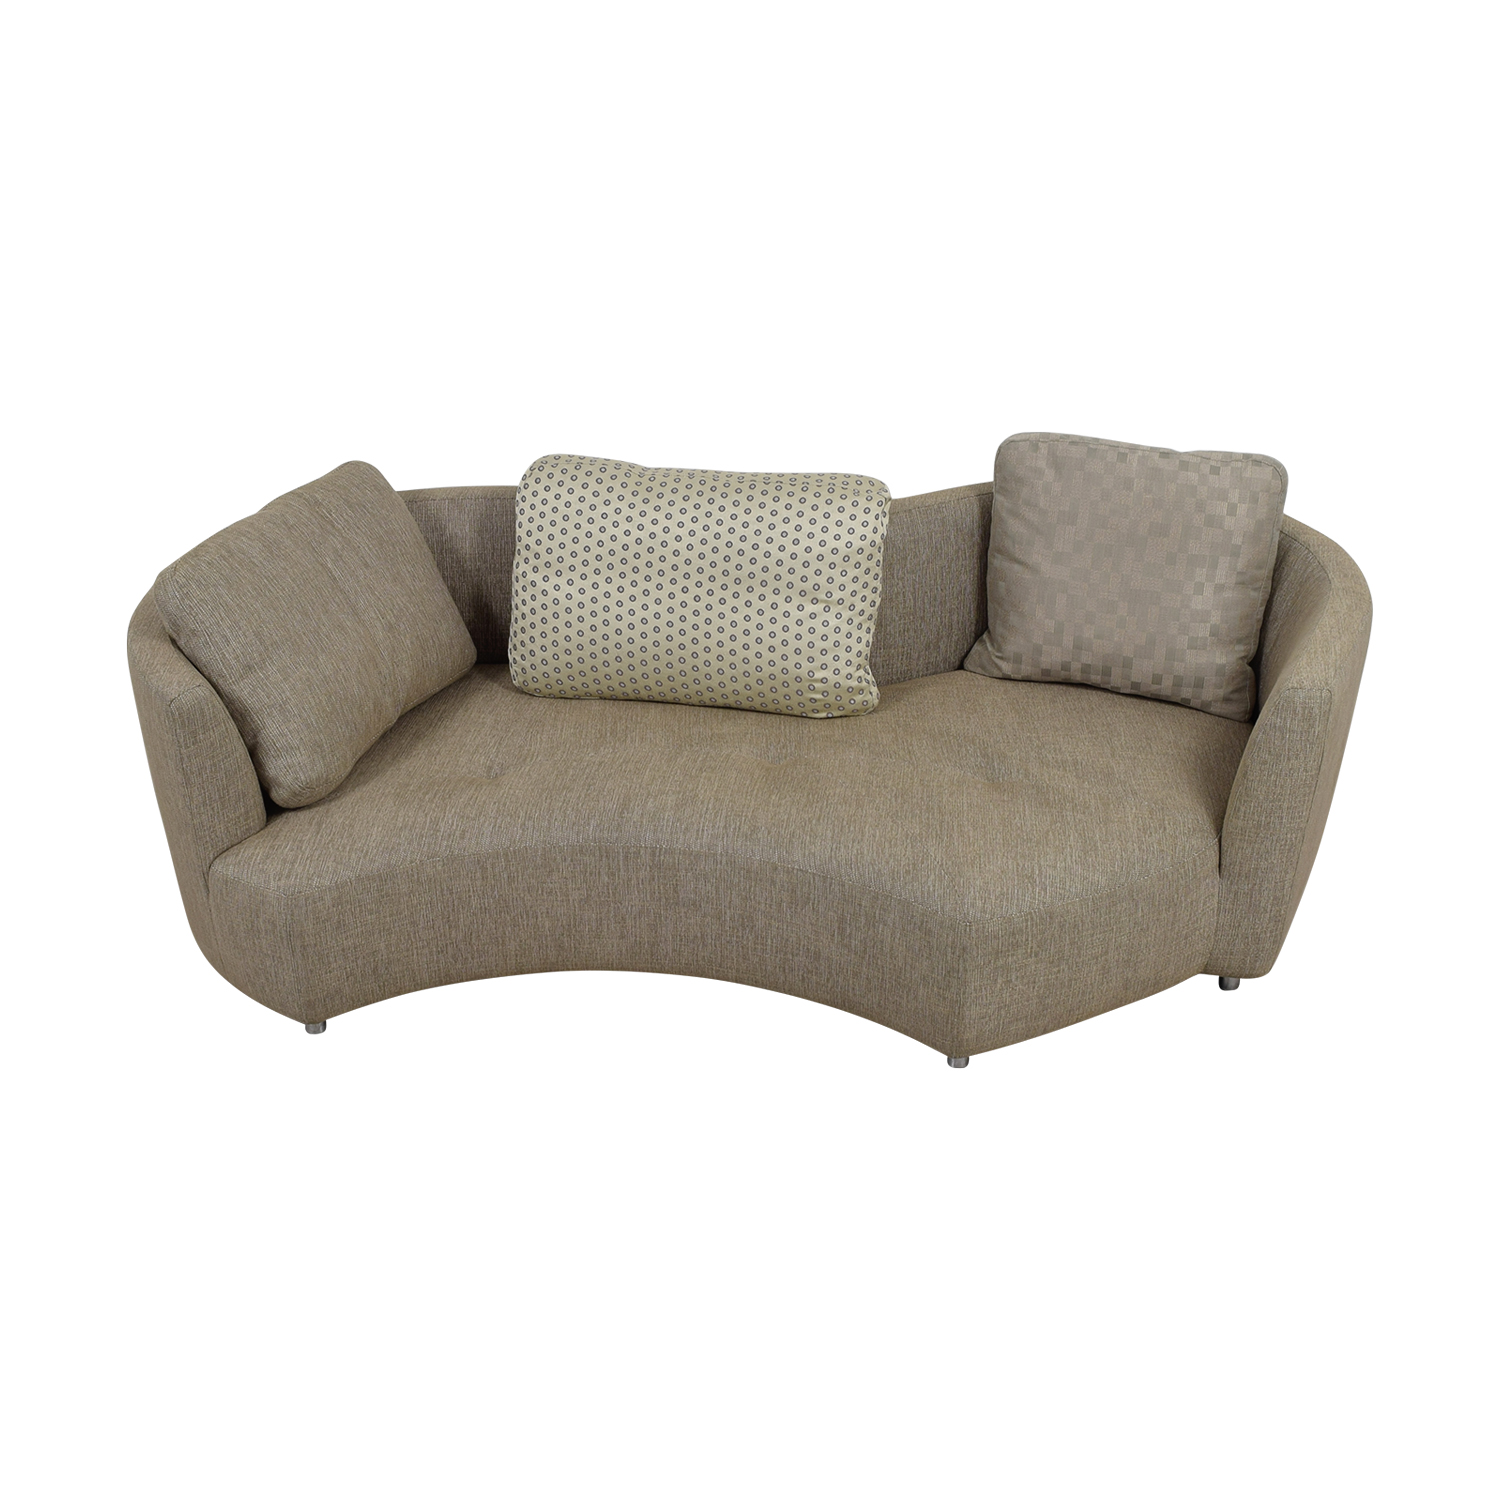 Roche Bobois Roche Bobois Three-Seater Tan Tweed Sofa coupon